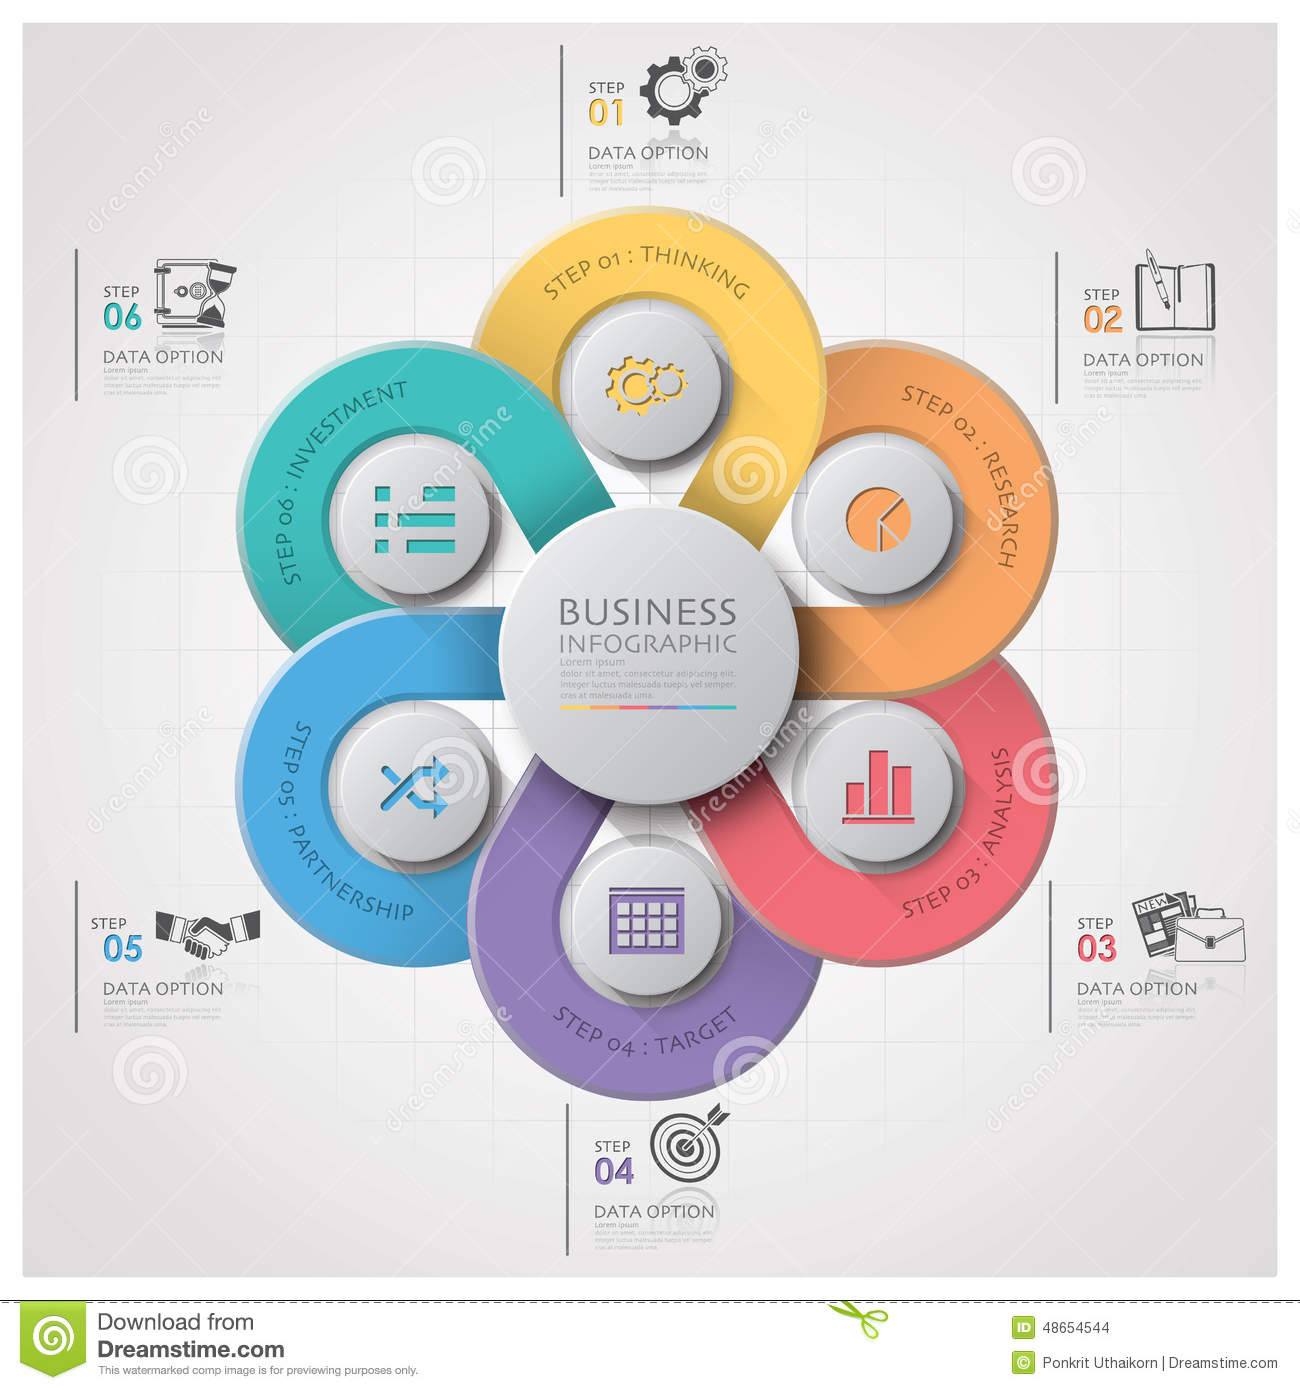 Business infographic with weaving curve circle step diagram stock business infographic with weaving curve circle step diagram pooptronica